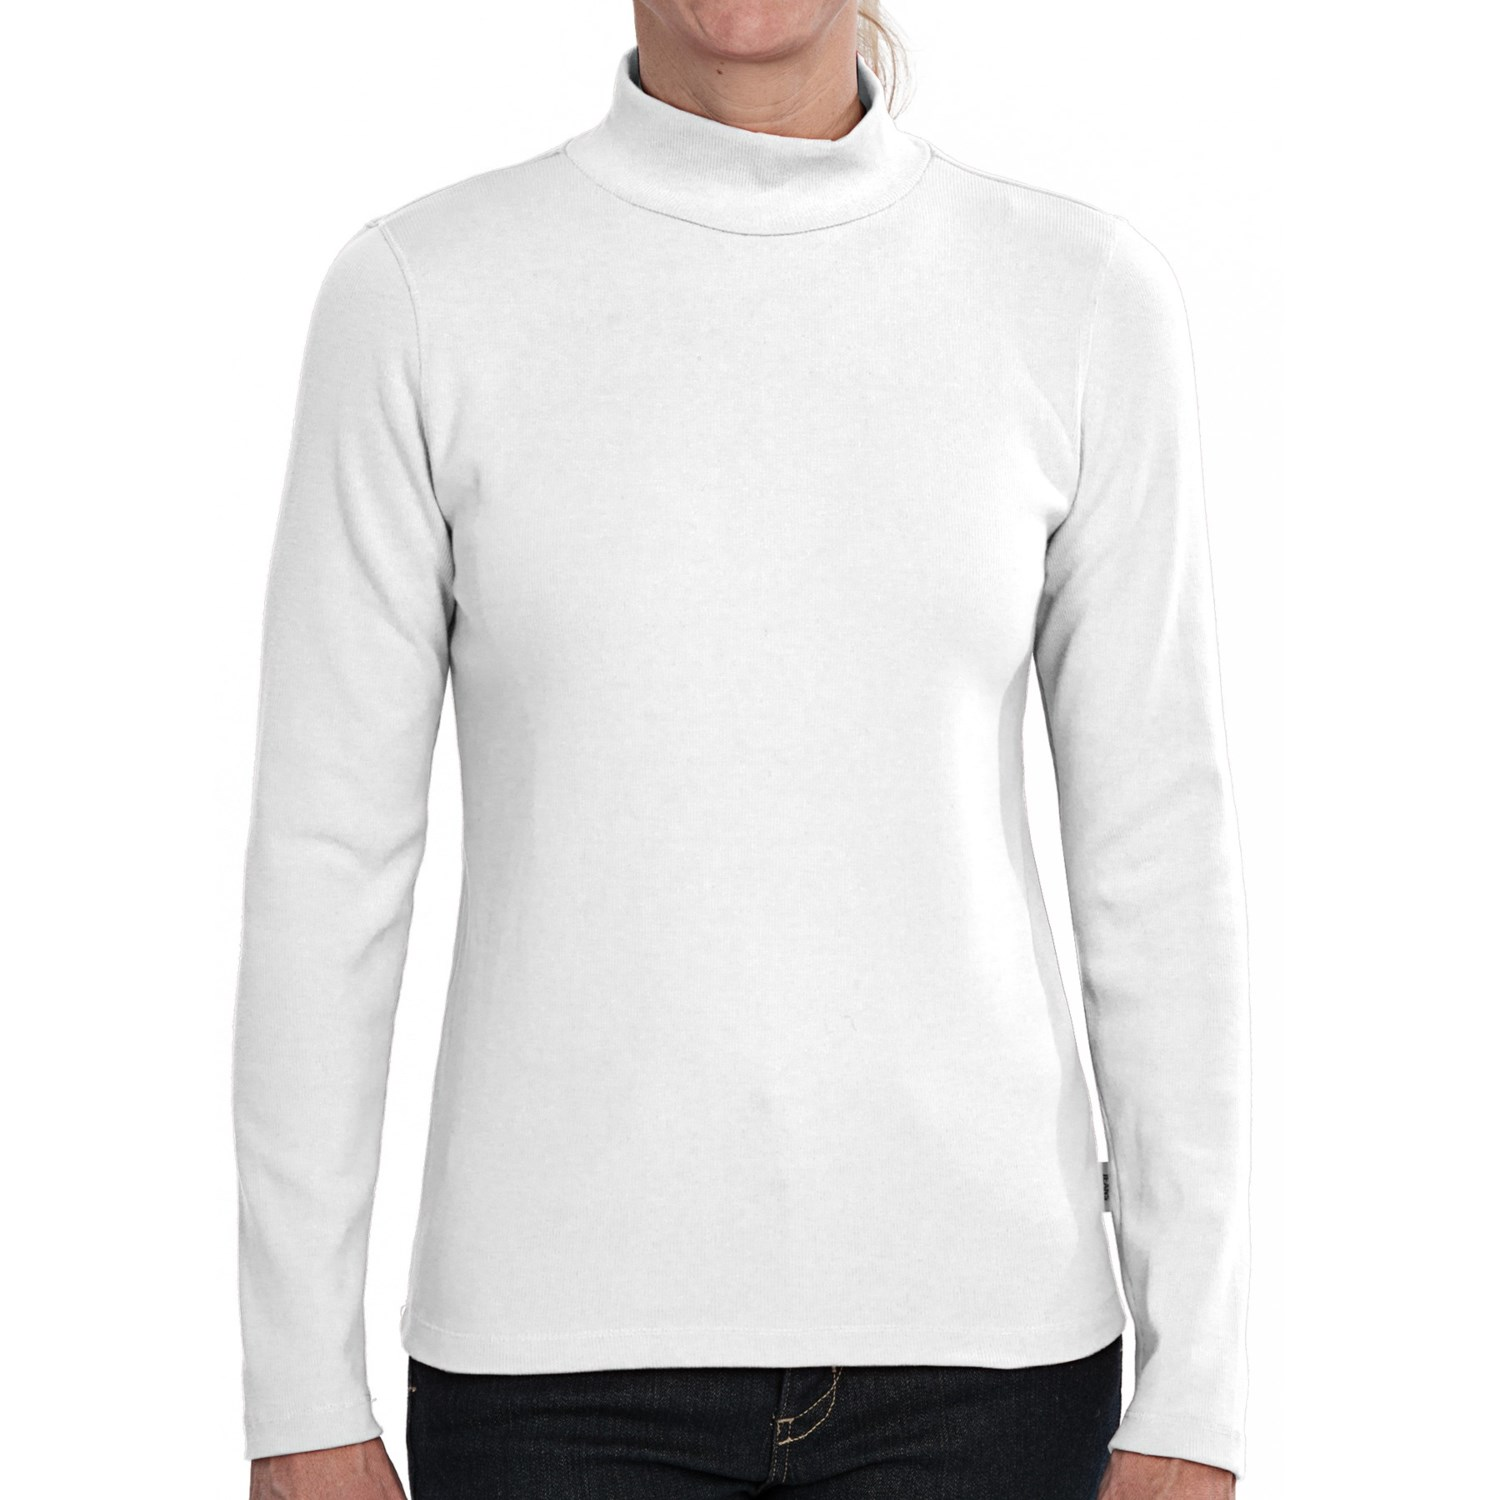 Stretch cotton mock neck shirt long sleeve for women for Ladies mock turtleneck shirts